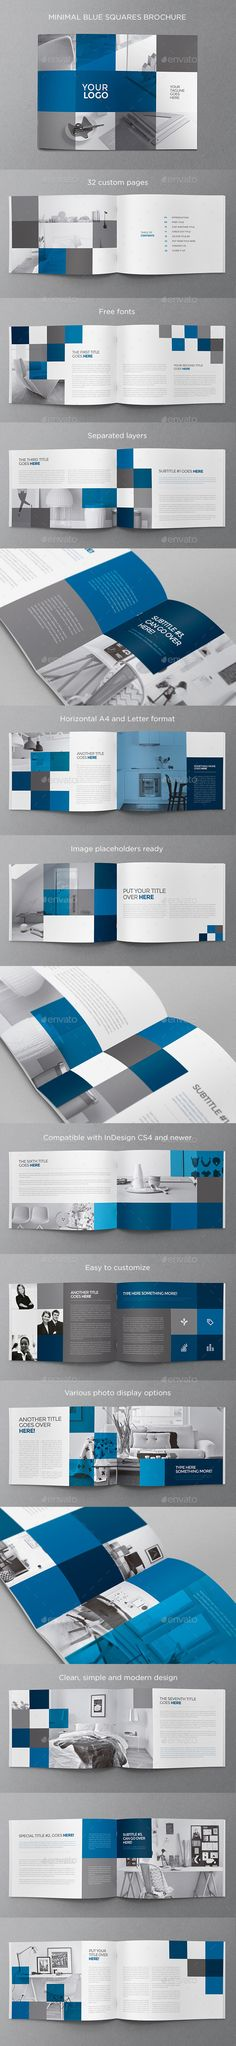 Minimal Blue Squares Brochure Template #design Download: http://graphicriver.net/item/minimal-blue-squares-brochure/11921055?ref=ksioks